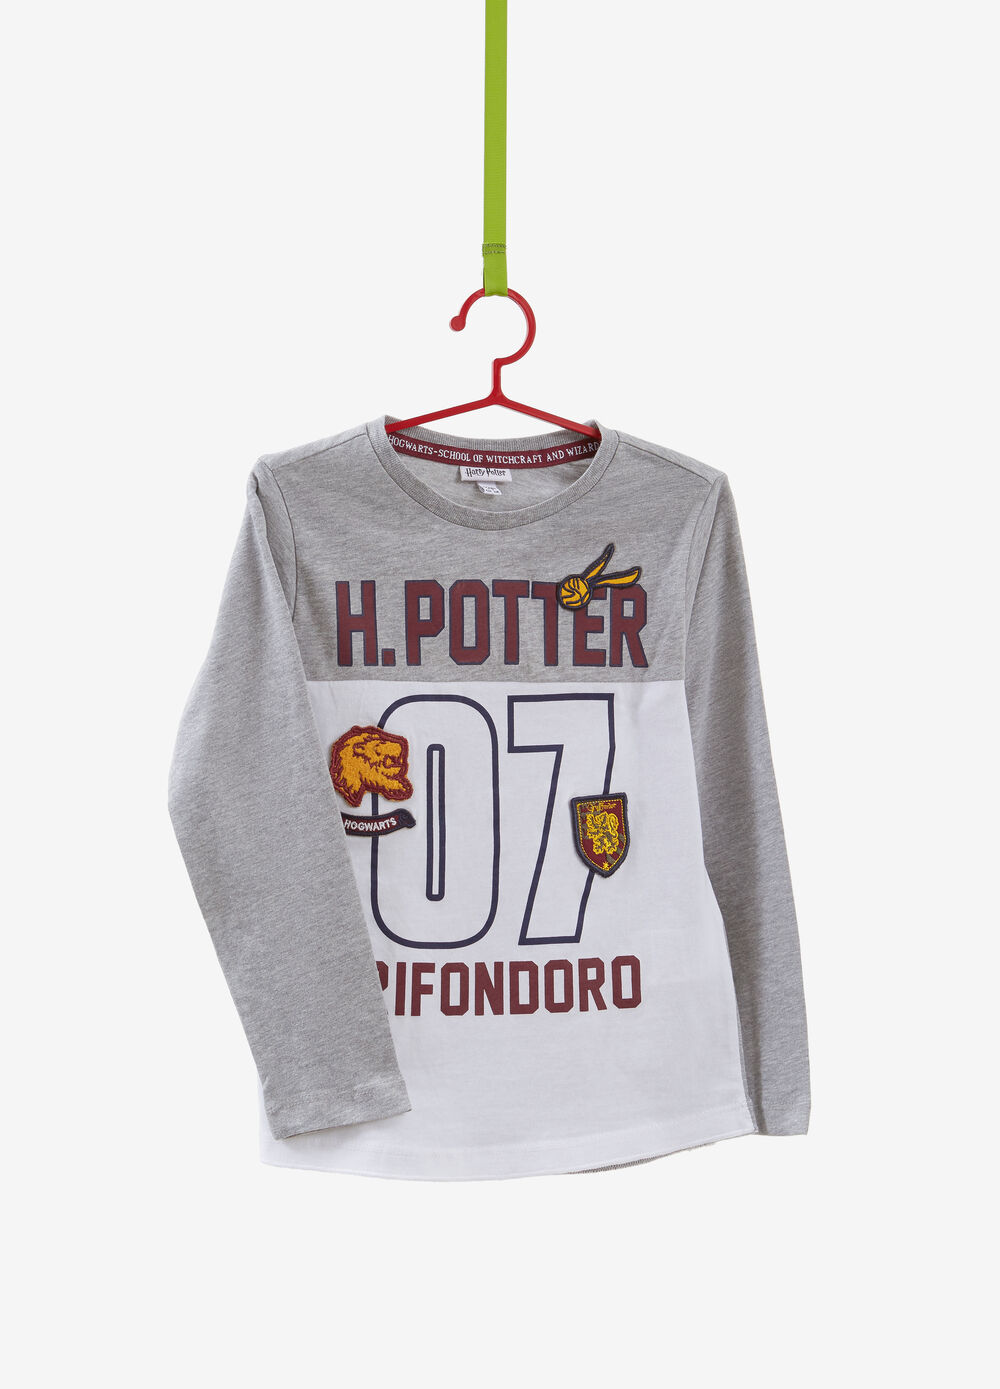 T-shirt misto cotone stampa Harry Potter